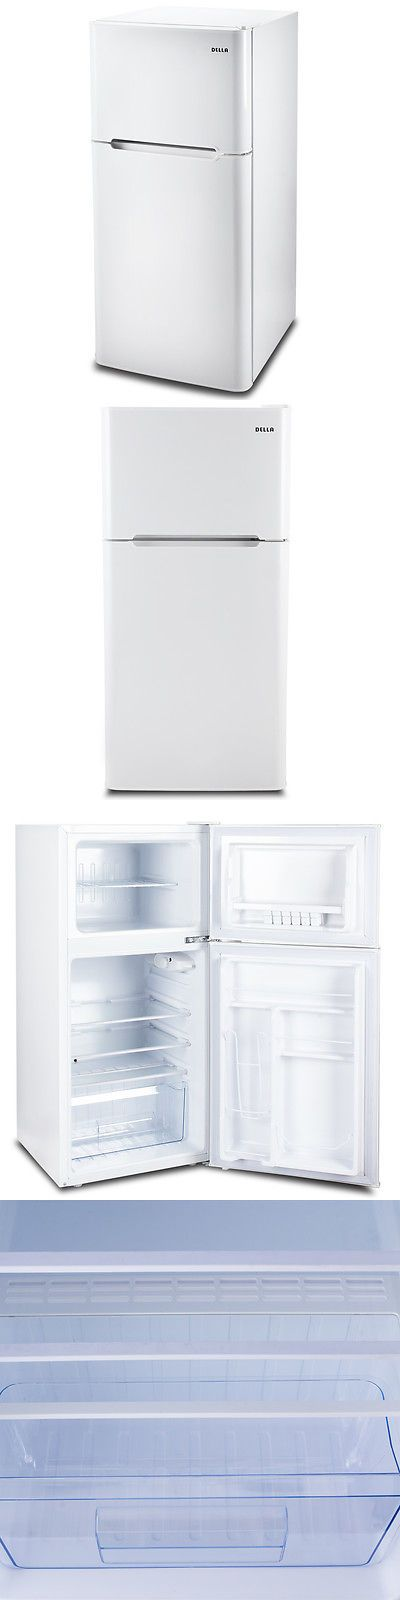 appliances: New 4.5 Cu Ft Refrigerator Mini Compact College Office Small Dorm Fridge, White BUY IT NOW ONLY: $219.97